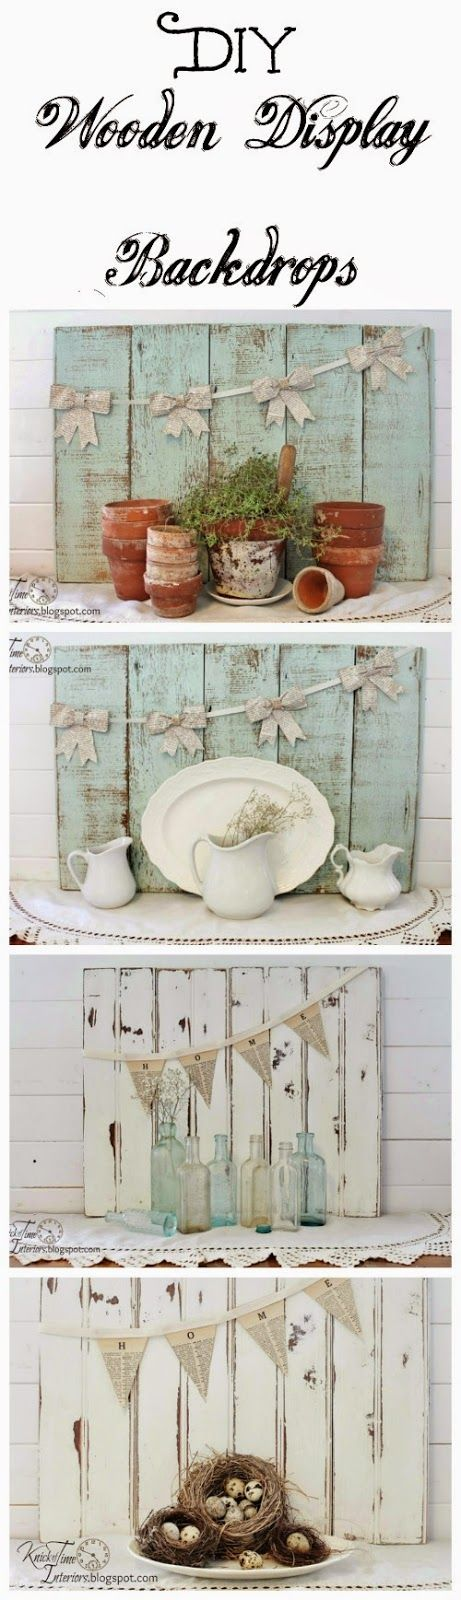 Create your own beautiful Display Backdrops